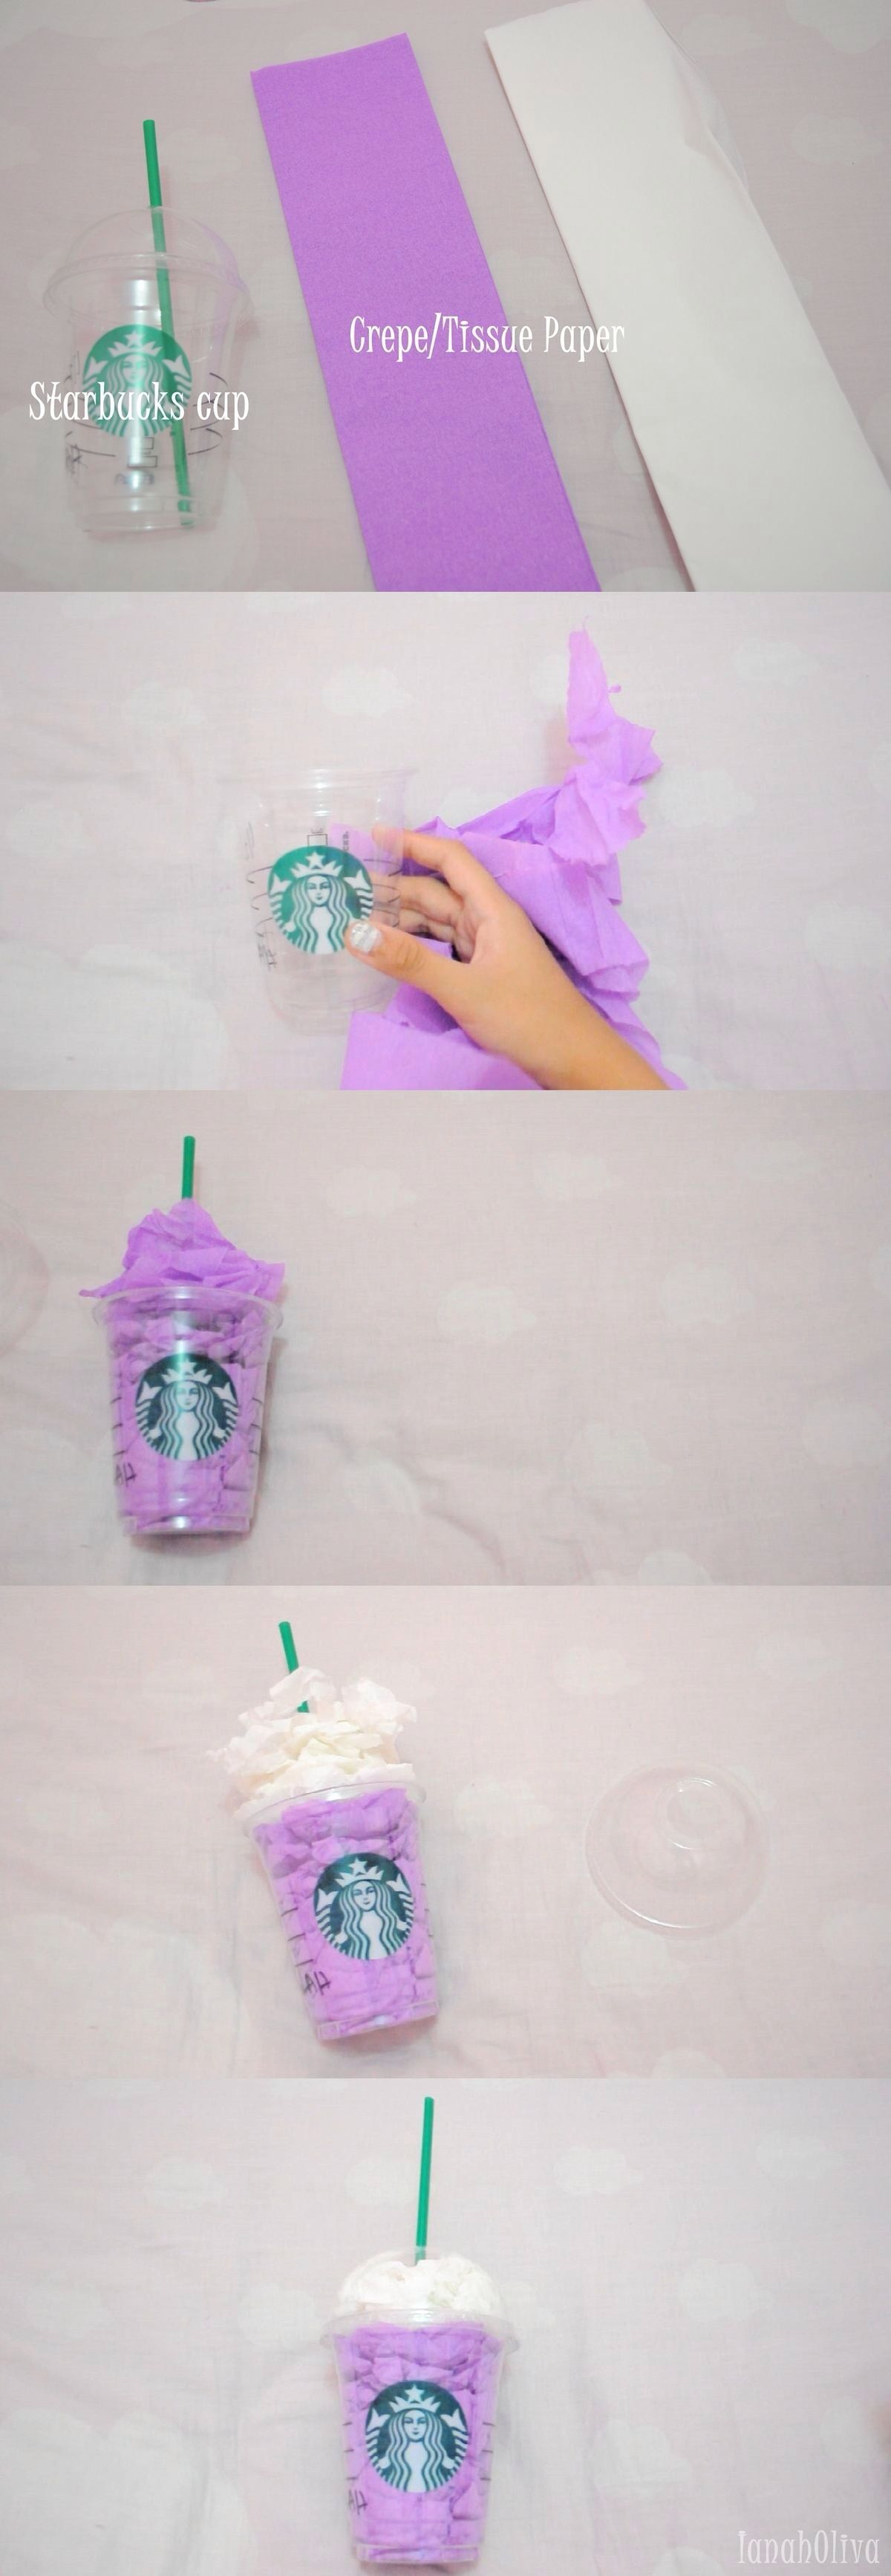 DIY Room Decor Starbucks Cup DIY Craft For Teens DIY